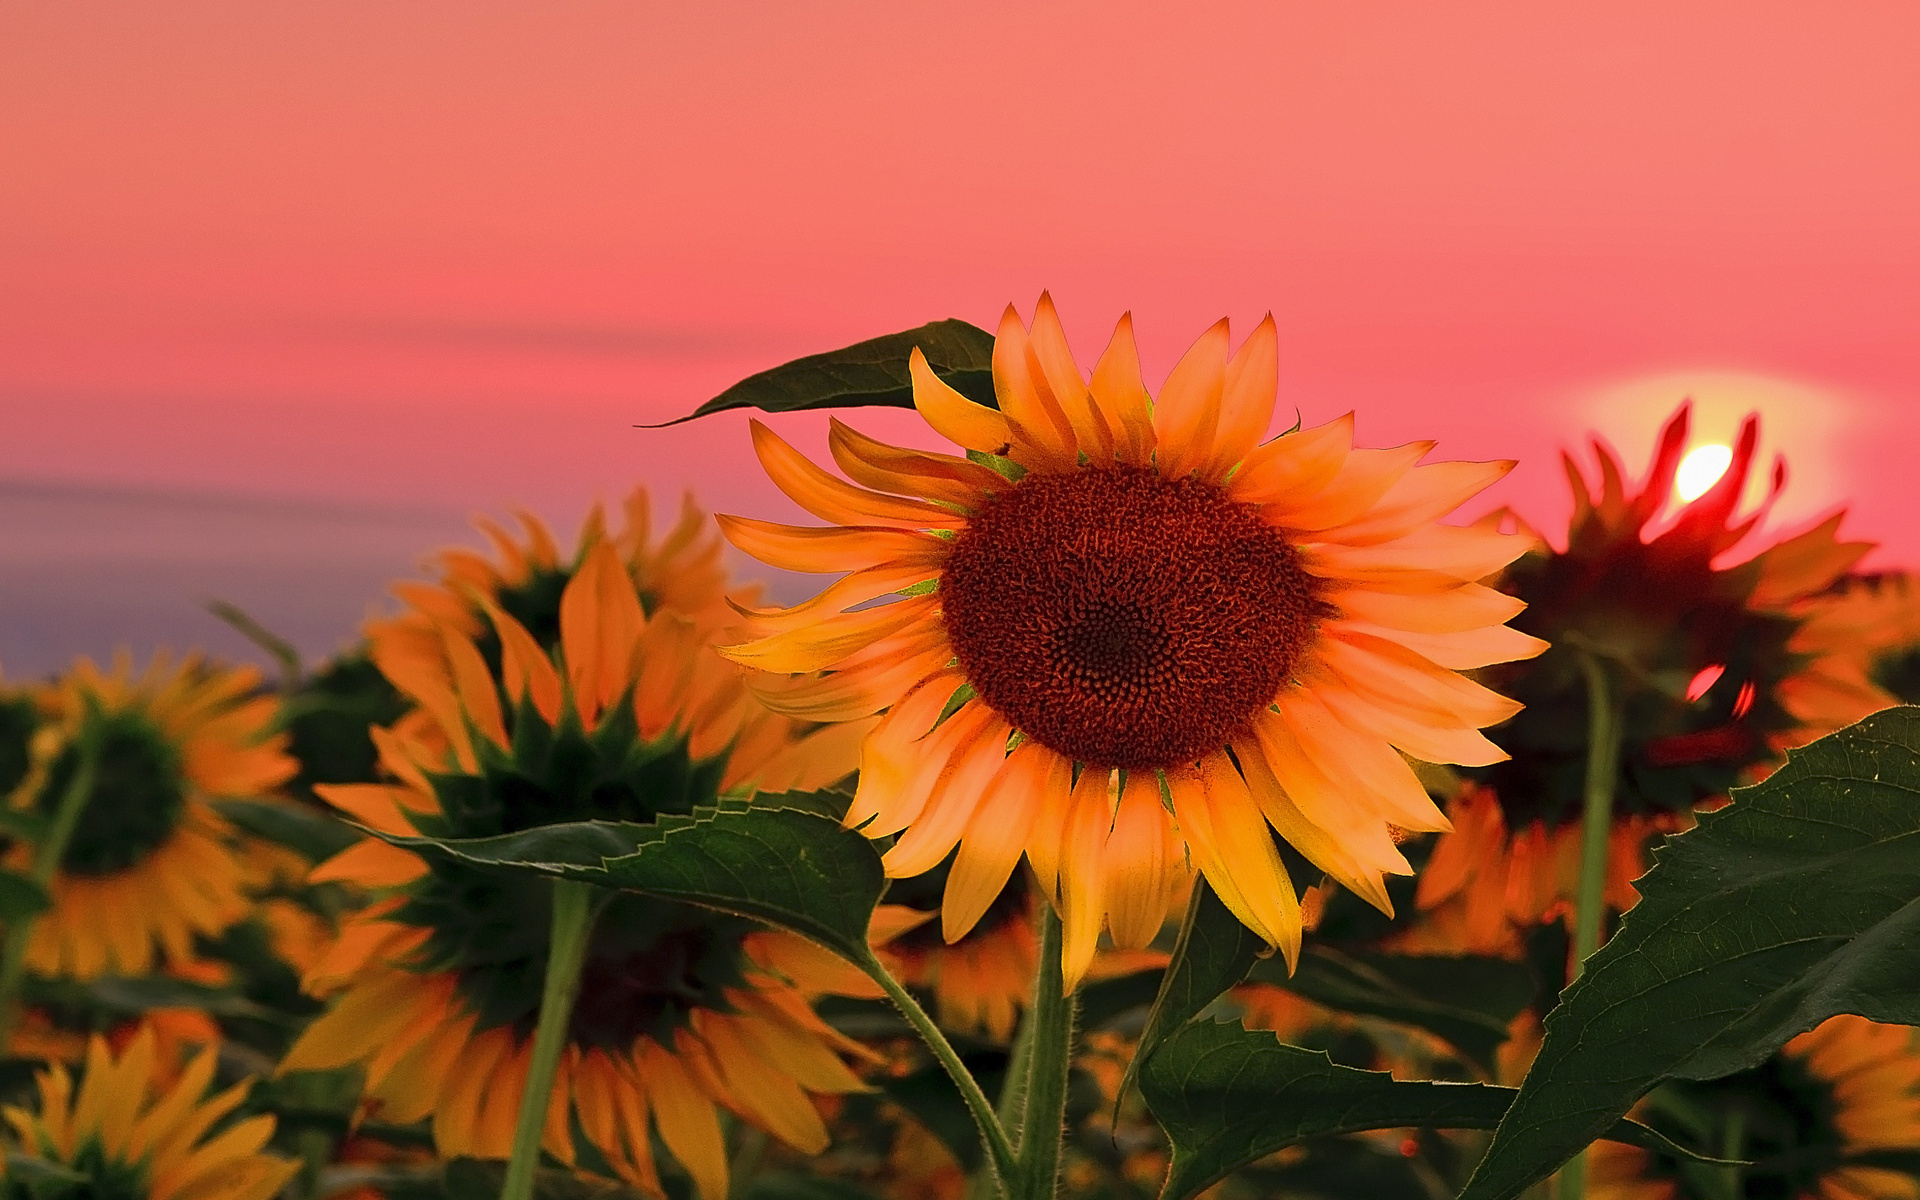 Field sunflowers sunset wallpaper 1920x1200 101196 WallpaperUP 1920x1200